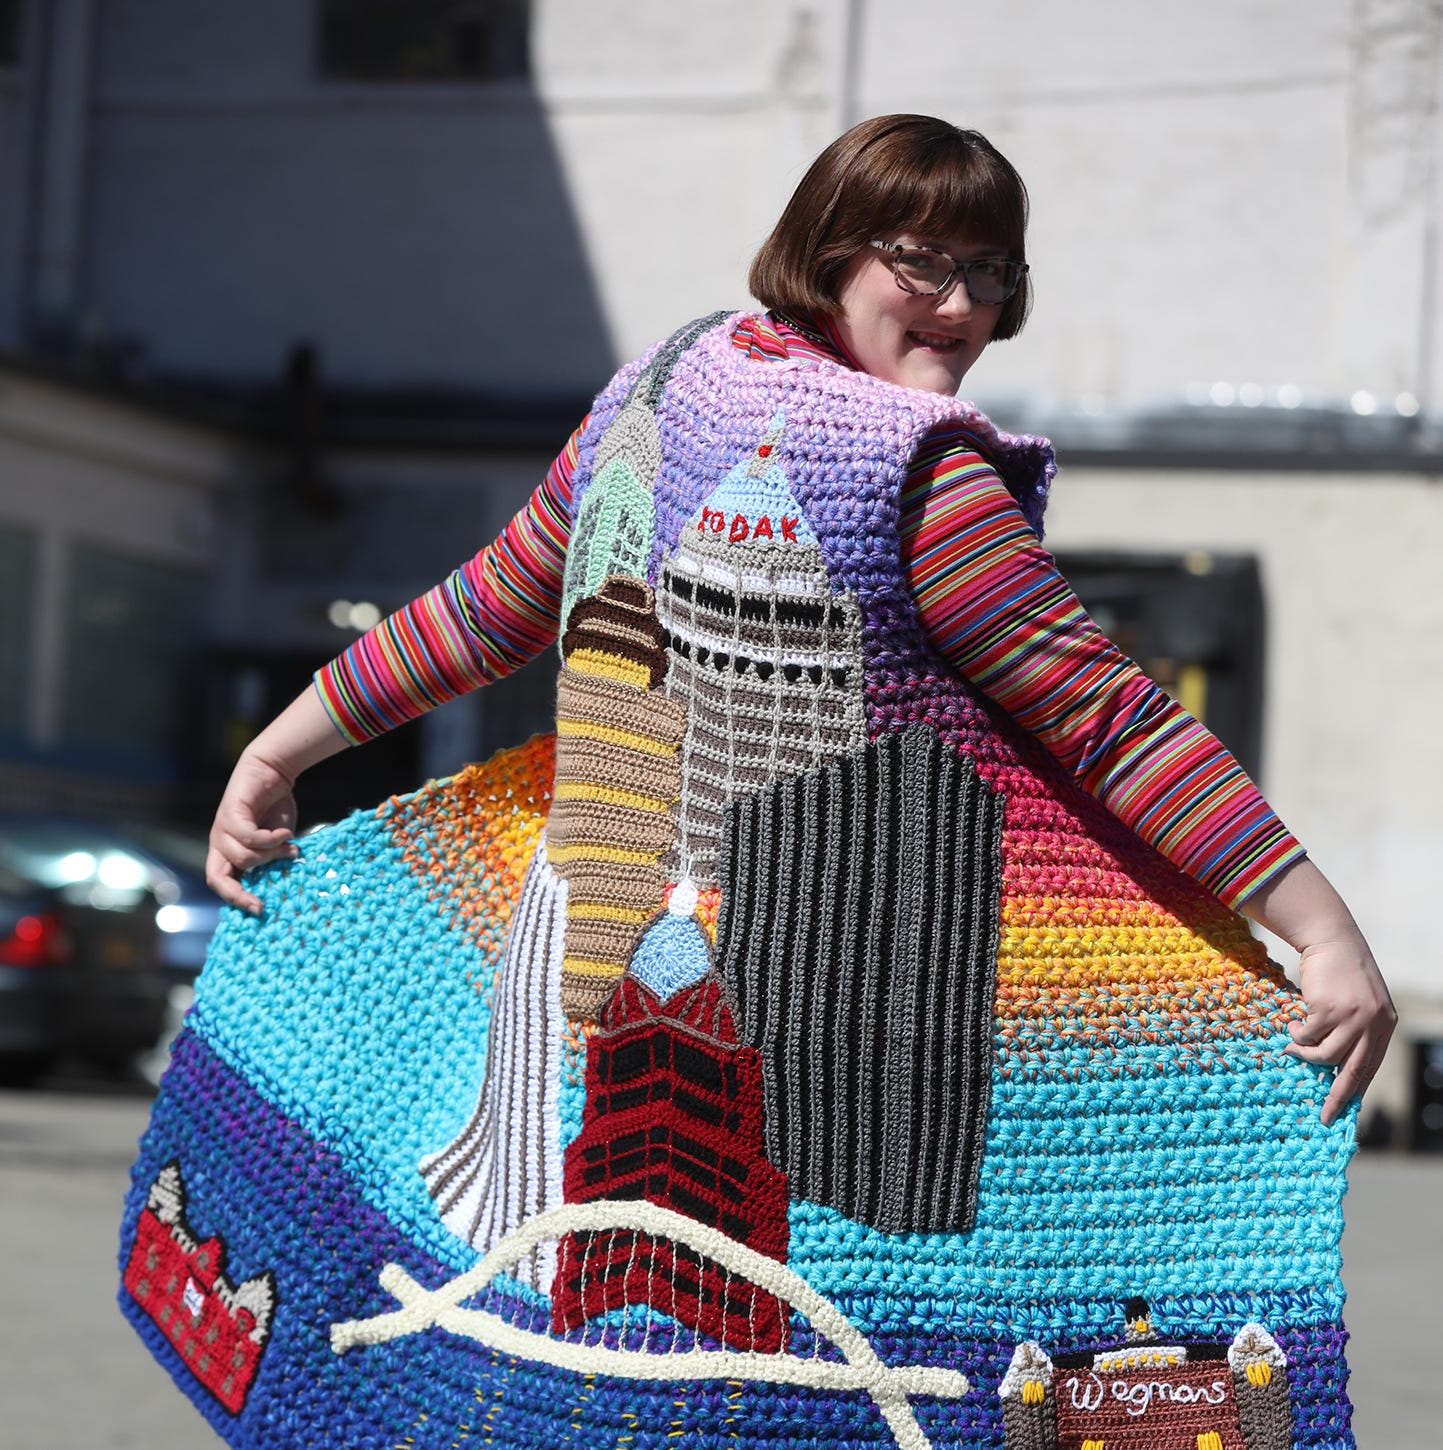 Crochet artist pays tribute to Rochester with garment she created